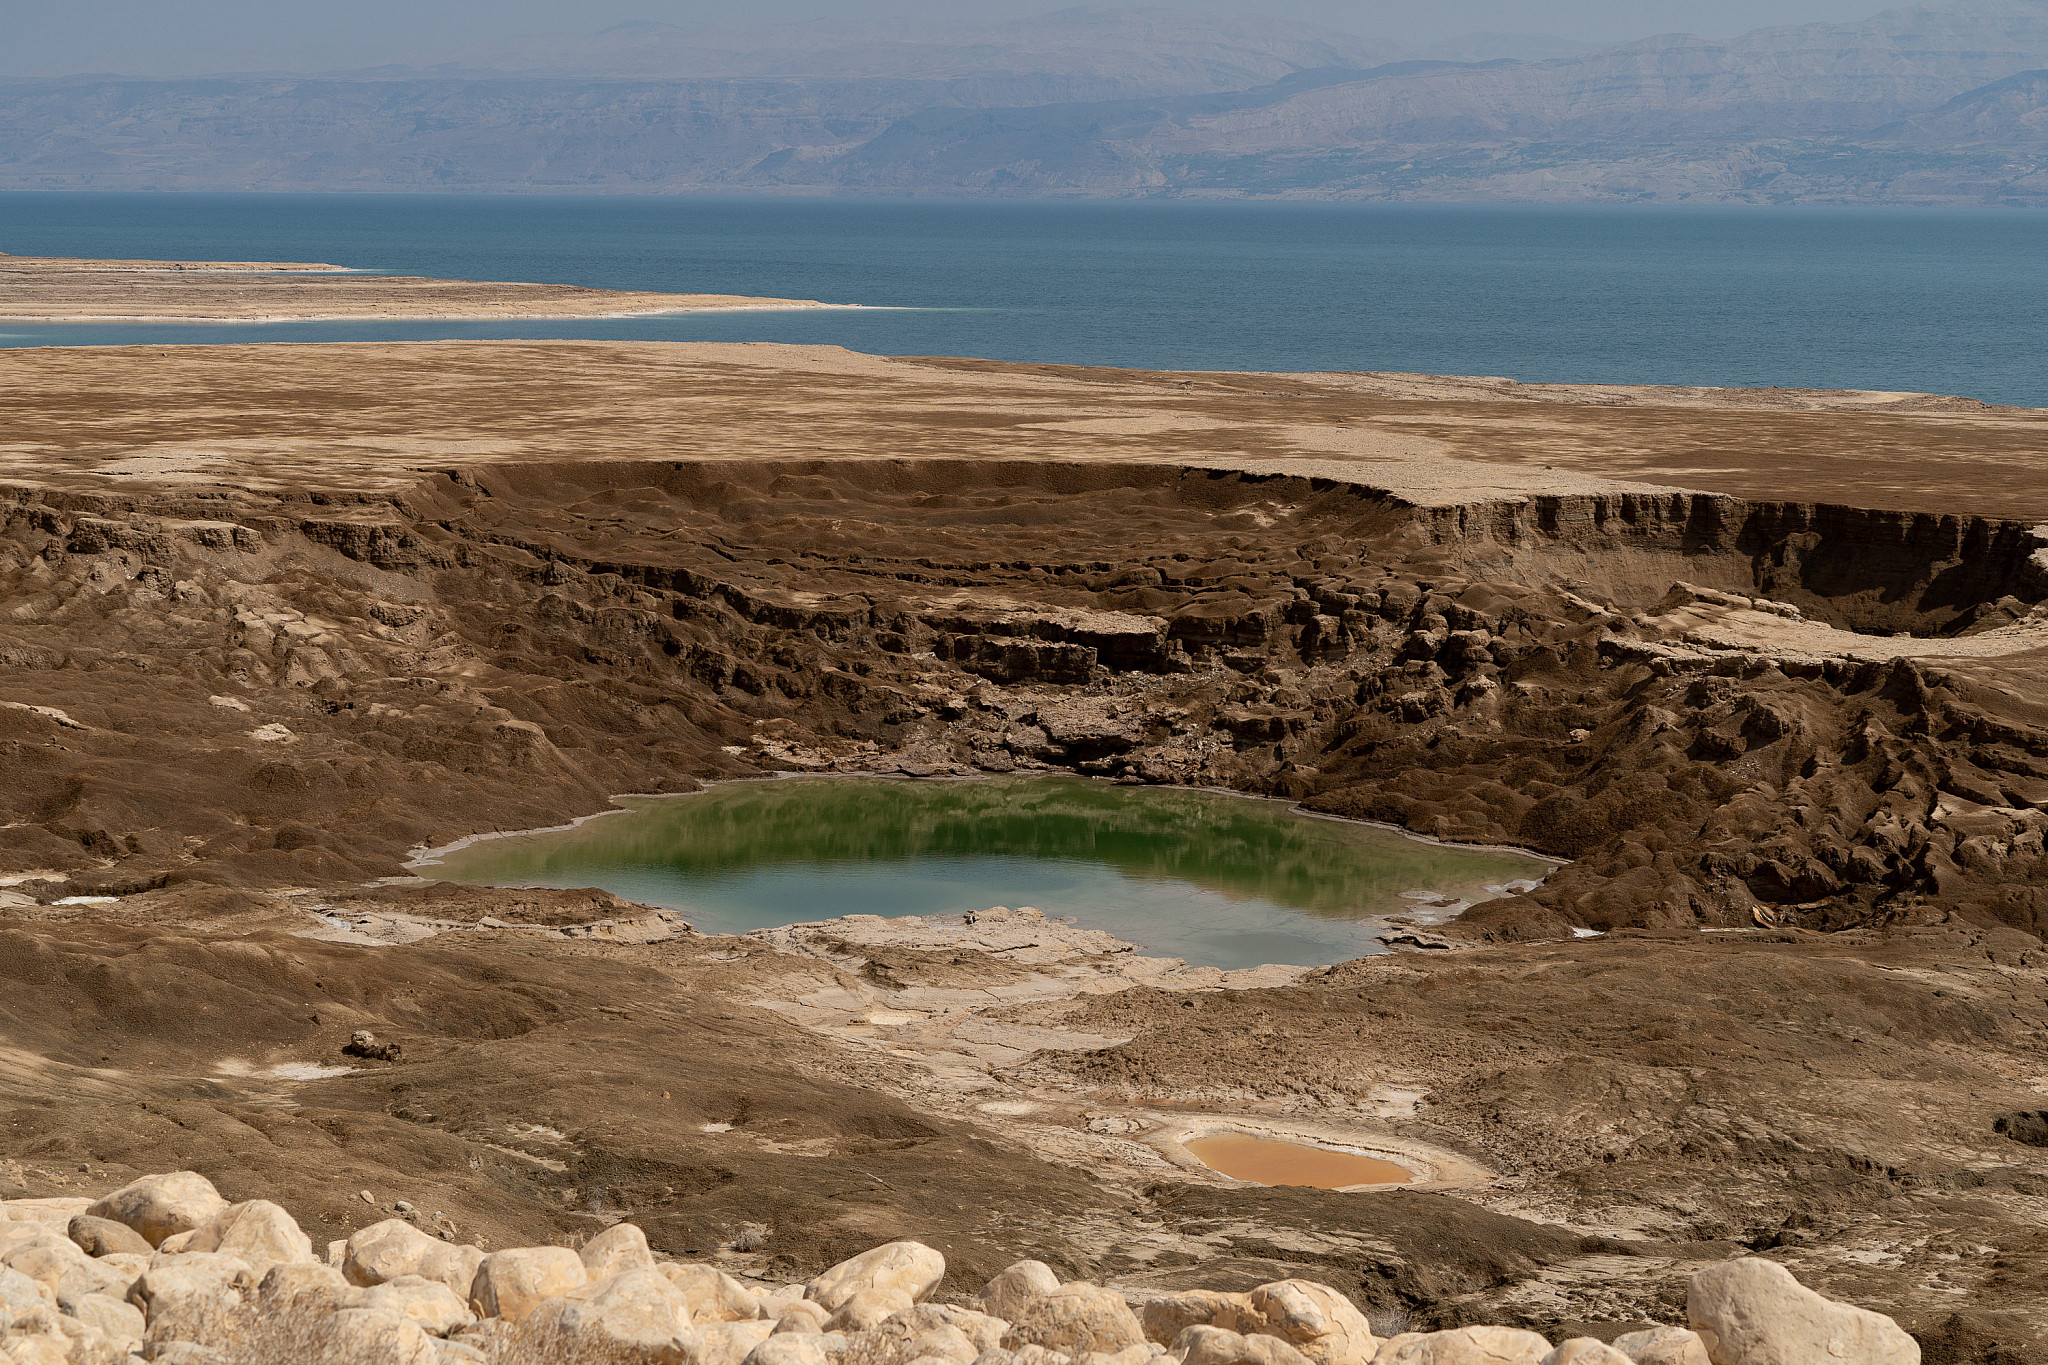 View of a sinkhole near the Dead Sea, southern Israel, October 4, 2018 . Sinkholes are a result of the continuing sea level drop of the Dead Sea.(Yaniv Nadav/FLASH90)